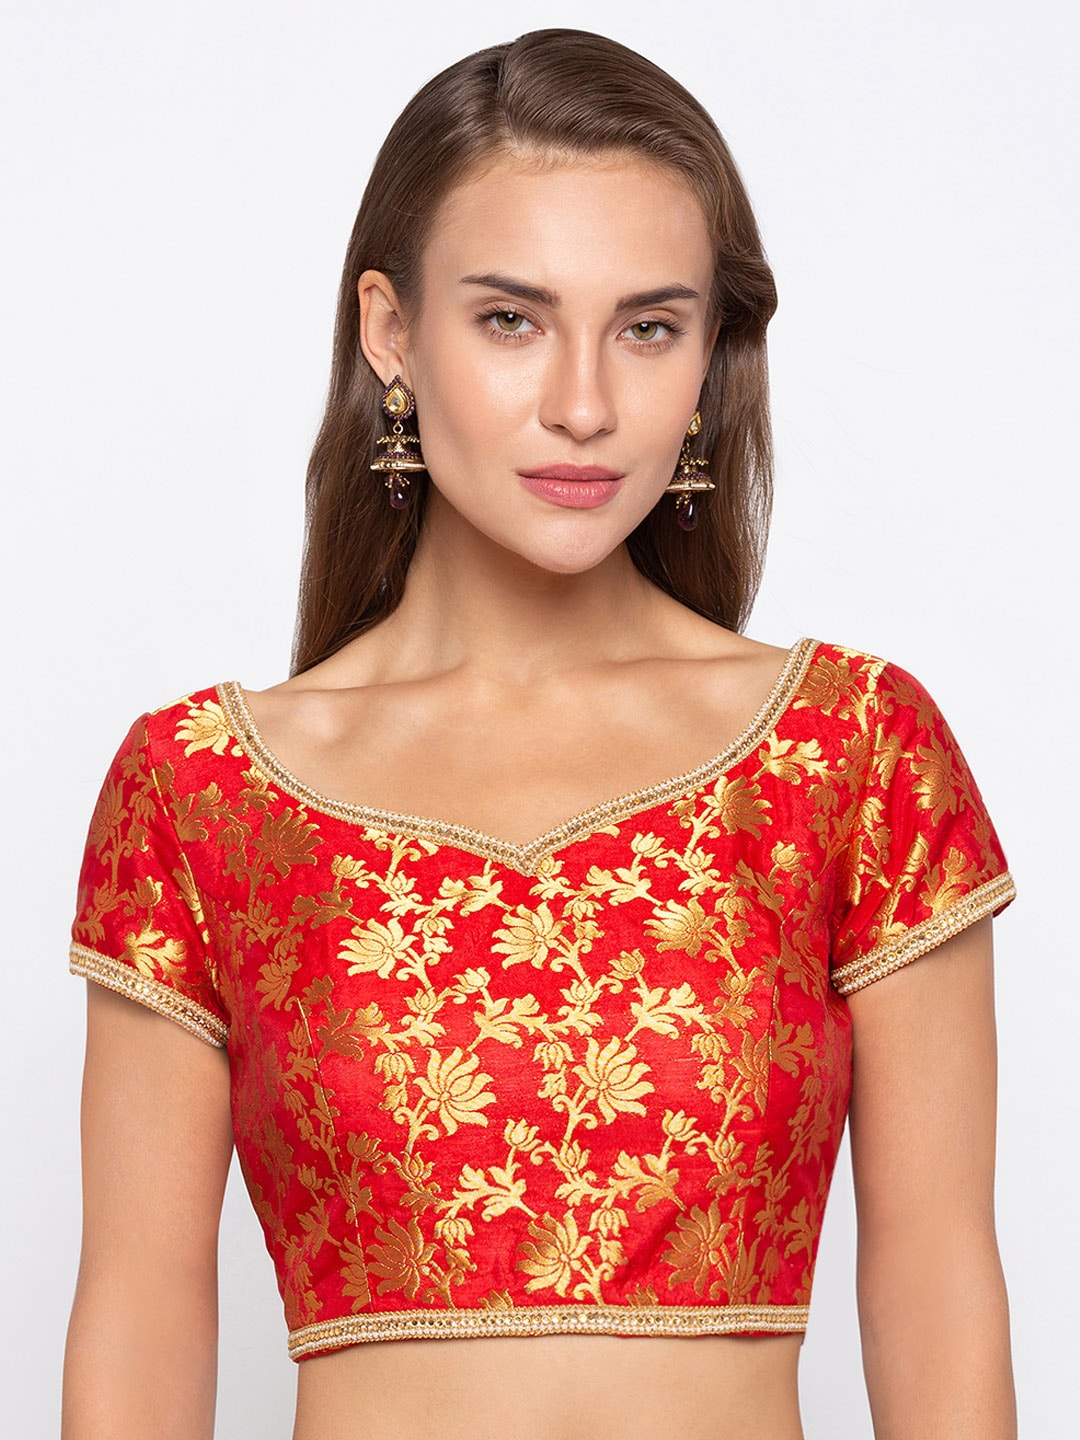 a35a184e529 Blouse - Buy Saree Blouses Online for Women in India